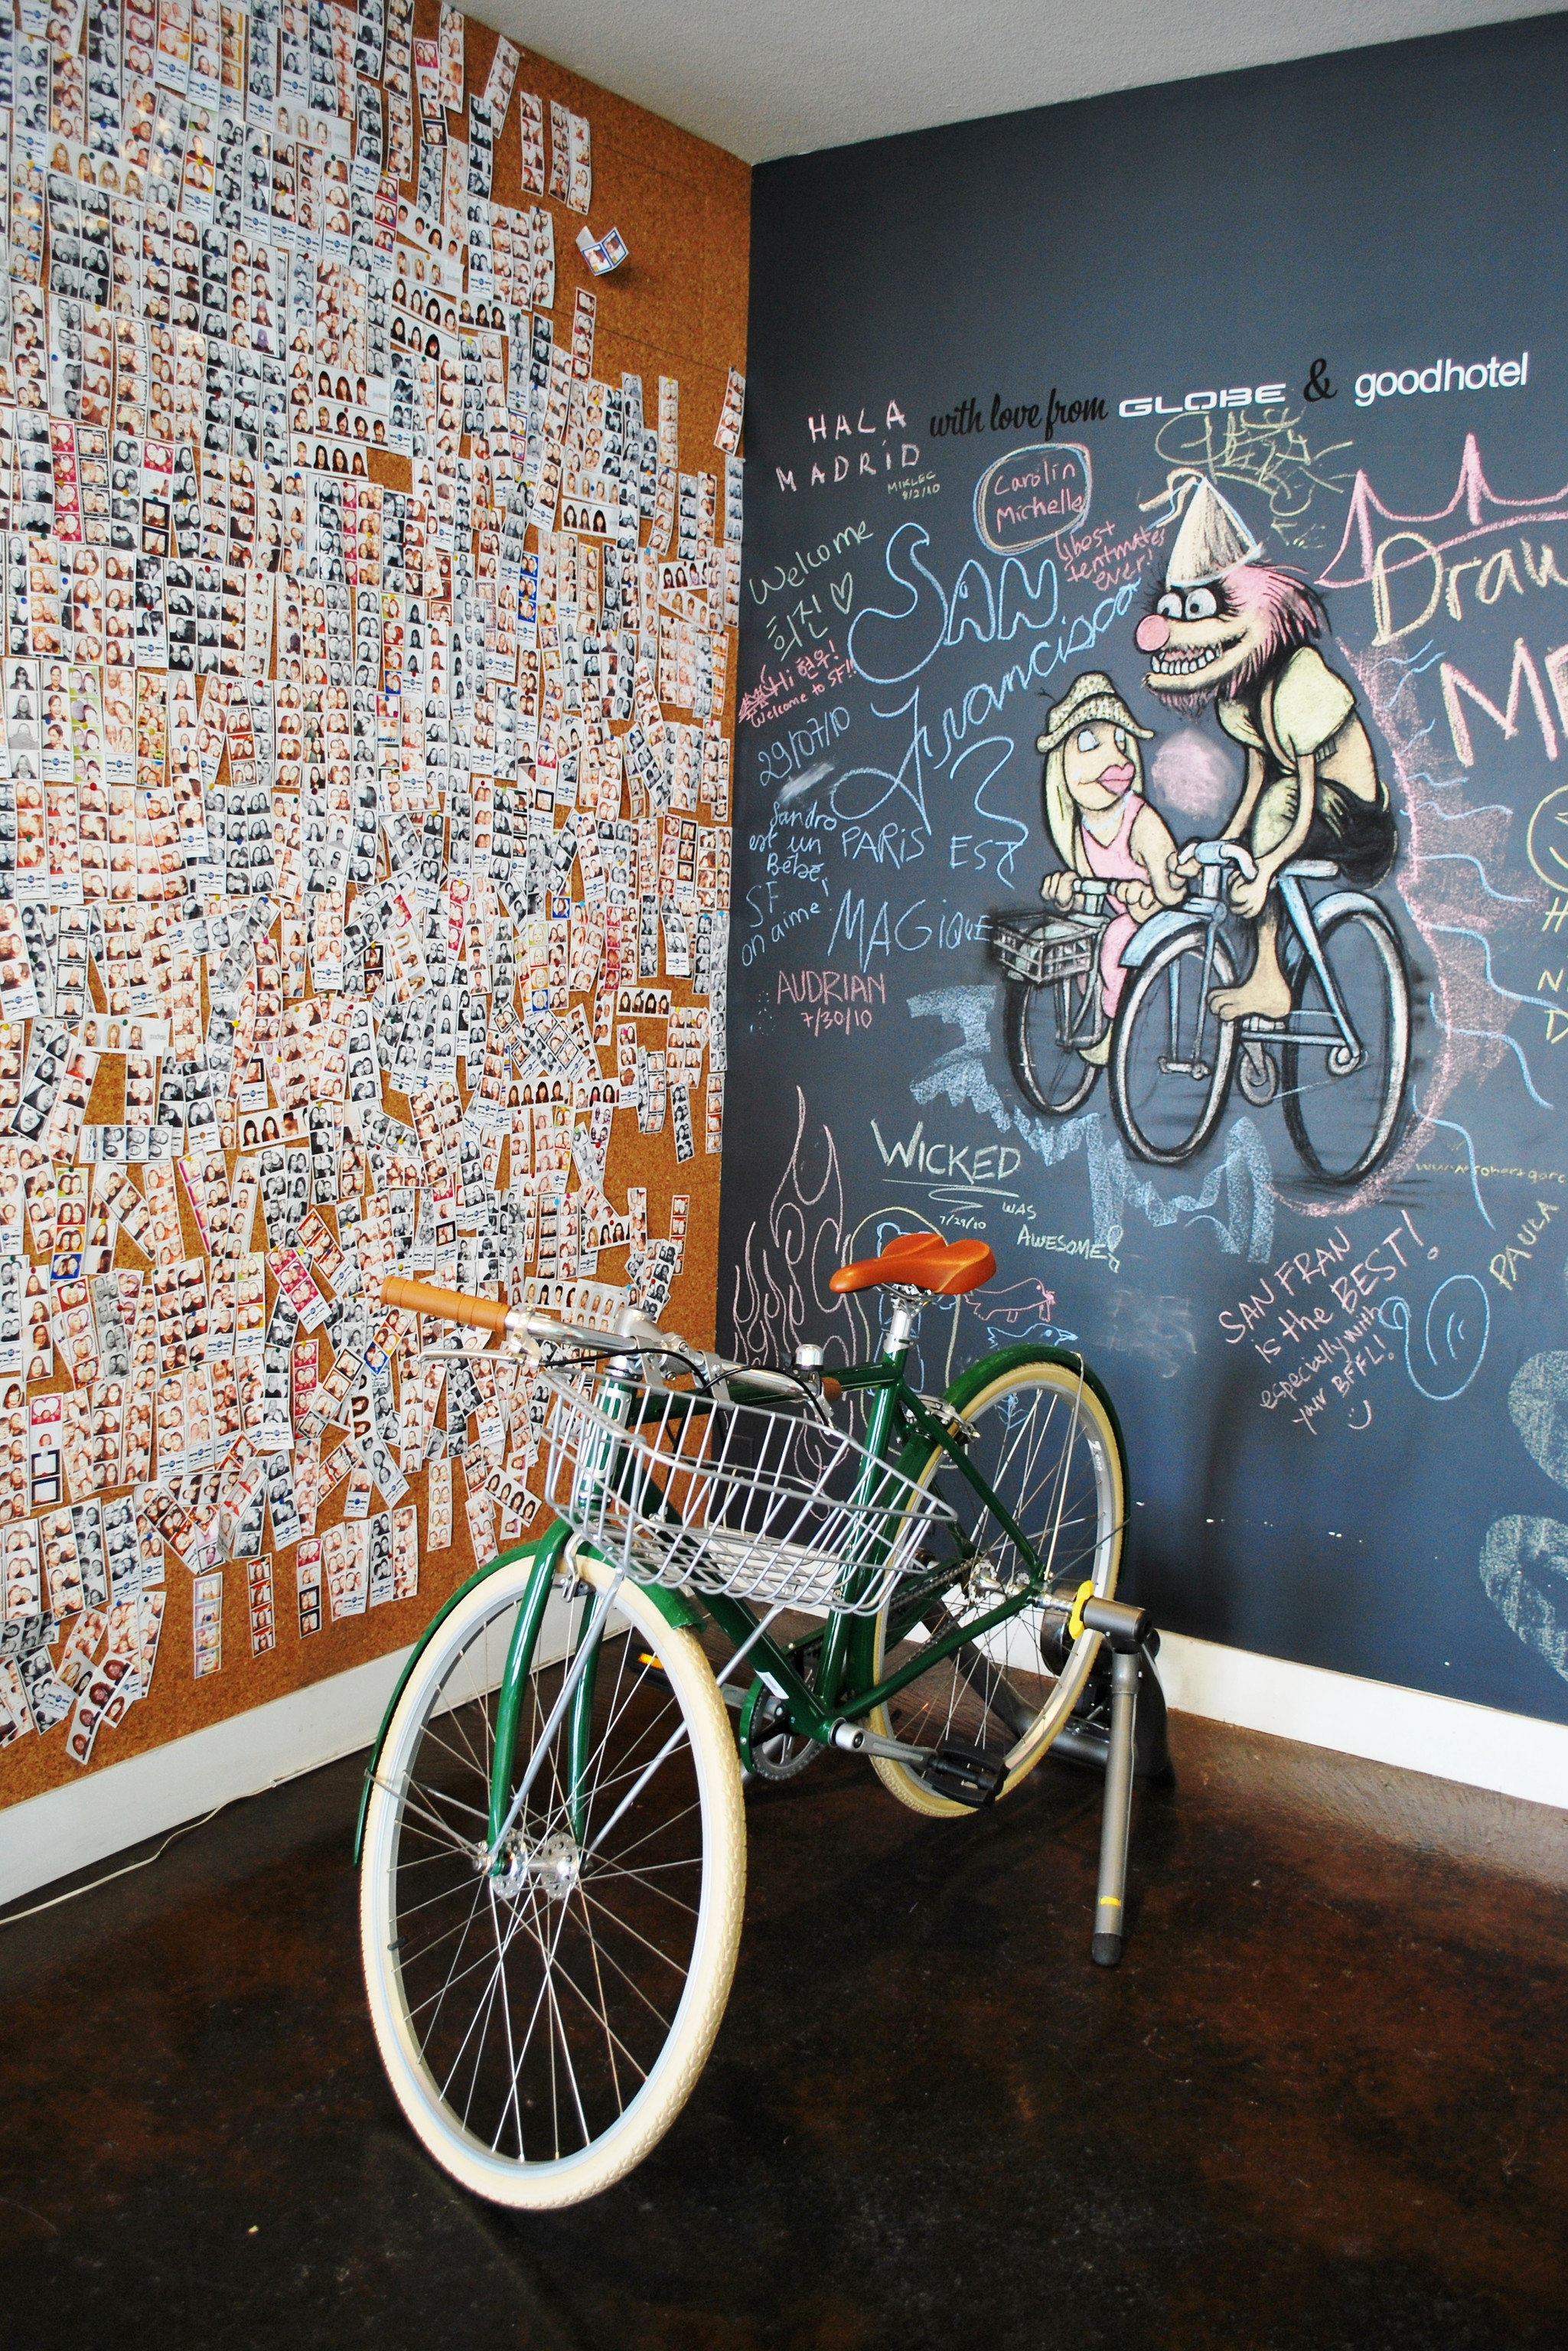 Hotels bicycle wall vehicle art mural Design painting modern art tourist attraction sports equipment